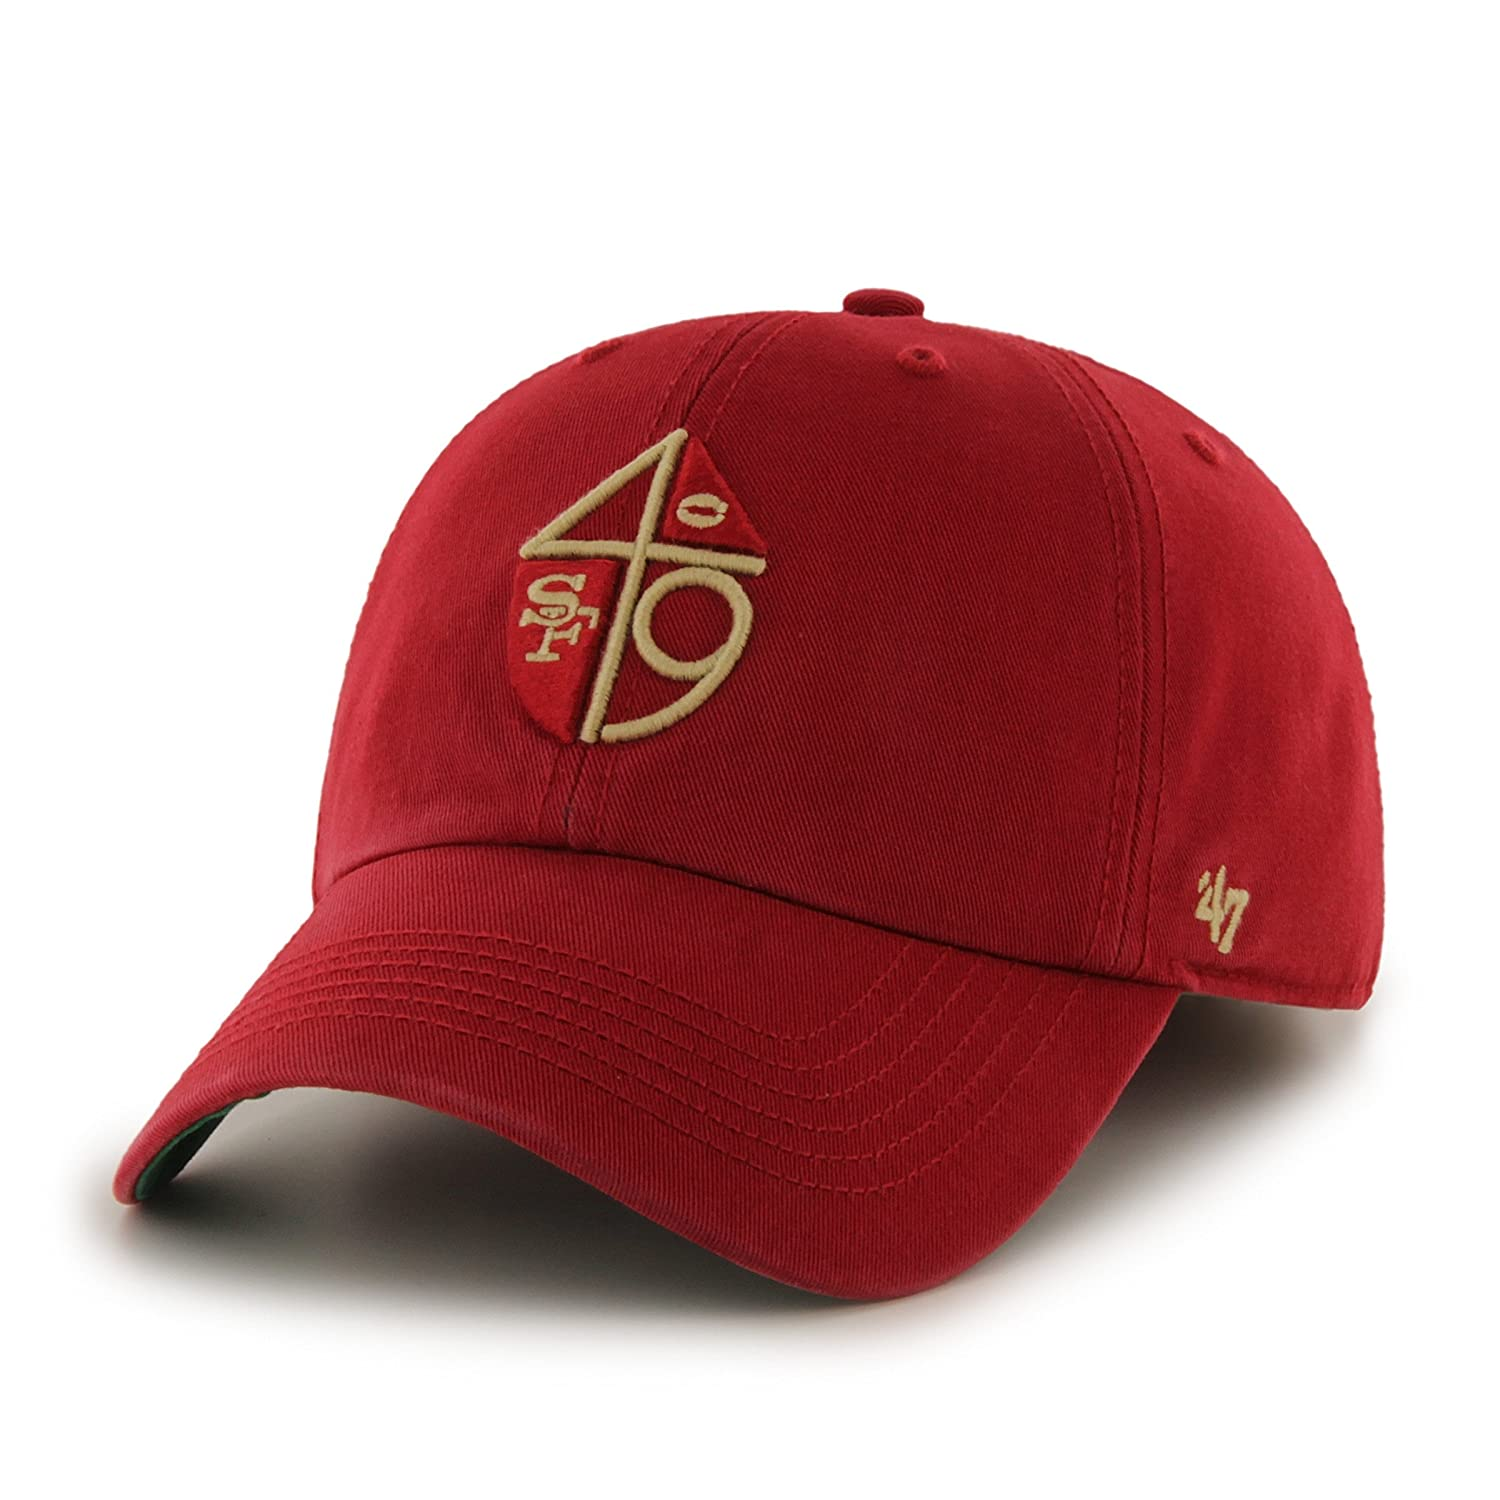 ... cheap amazon nfl san francisco 49ers franchise fitted hat small red b  sports outdoors feedd 6e2e2 4dc728d26